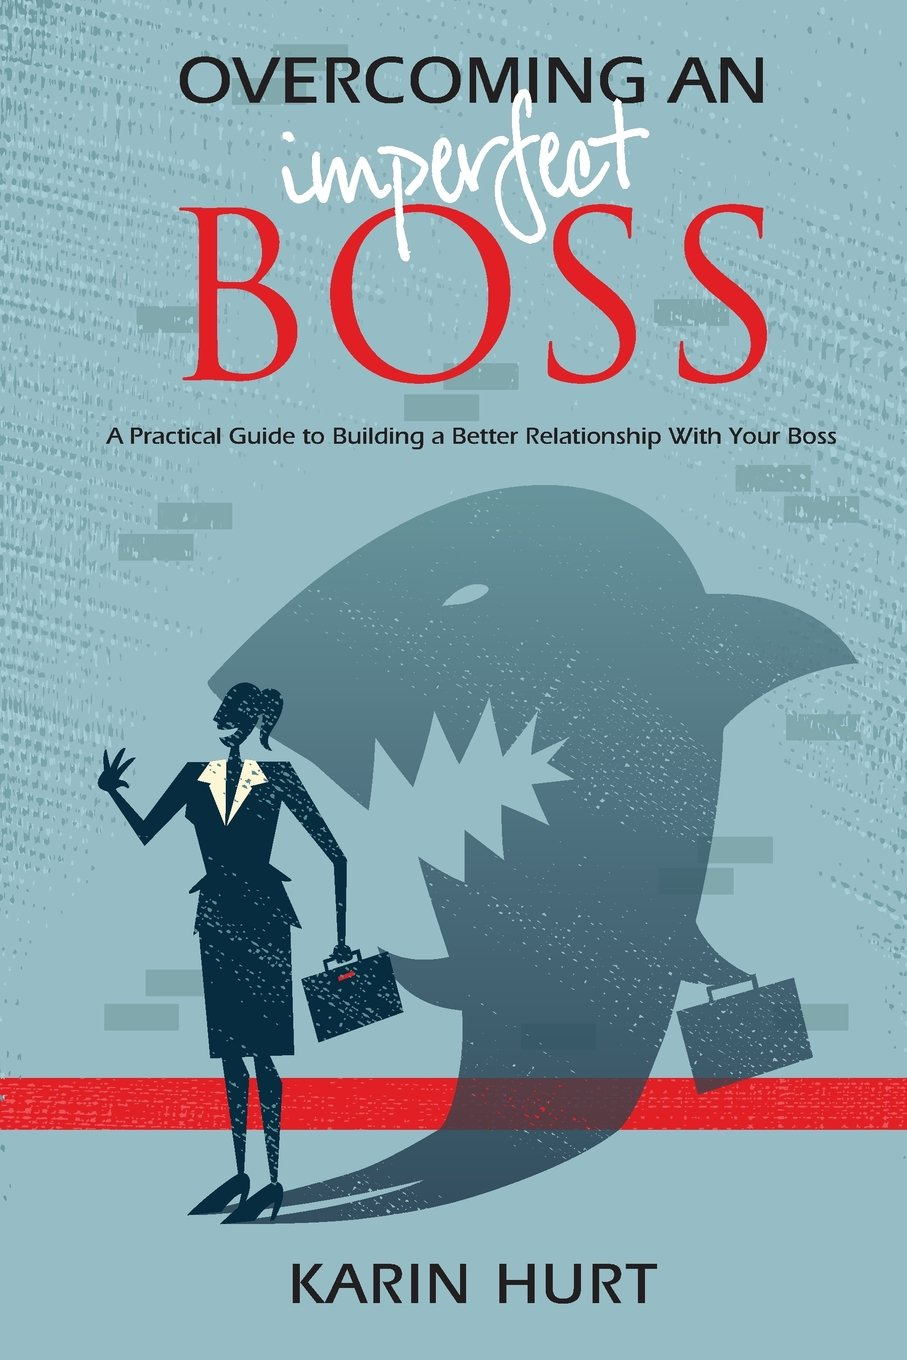 Overcoming an Imperfect Boss: A Practical Guide to Building a Better Relationship With Your Boss